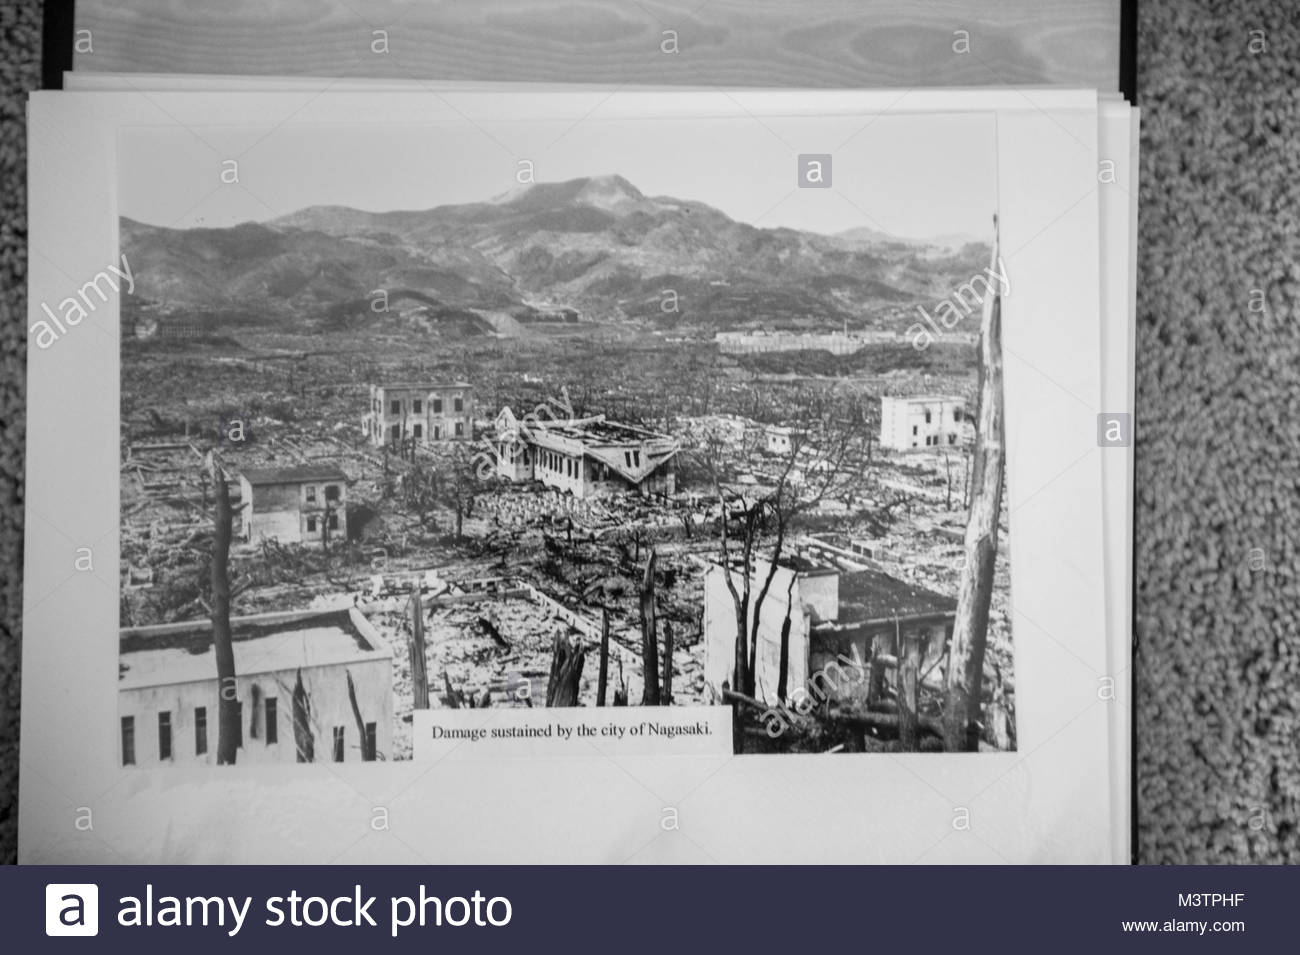 nagasaki men On august 6 and 9, 1945, us airmen dropped the nuclear bombs little boy and fat man on the japanese cities of hiroshima and nagasaki on april 26, 1986, the number four reactor at the.